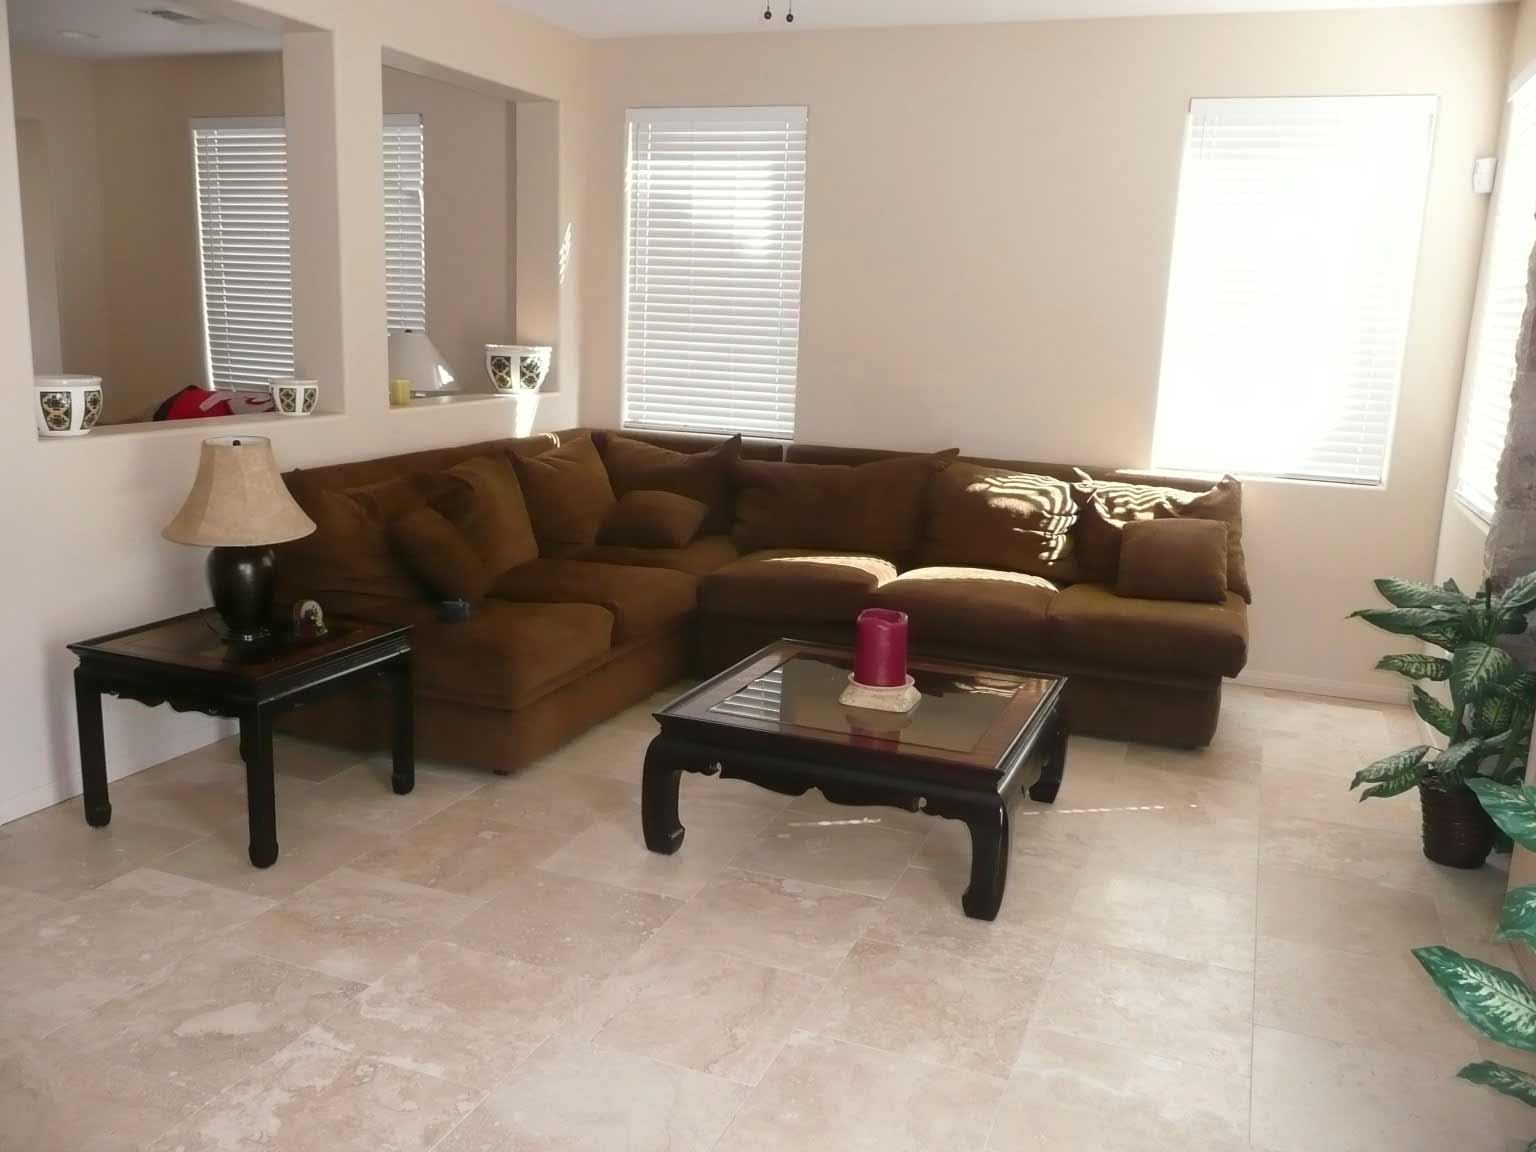 Affordable Furniture Stores to Save Money